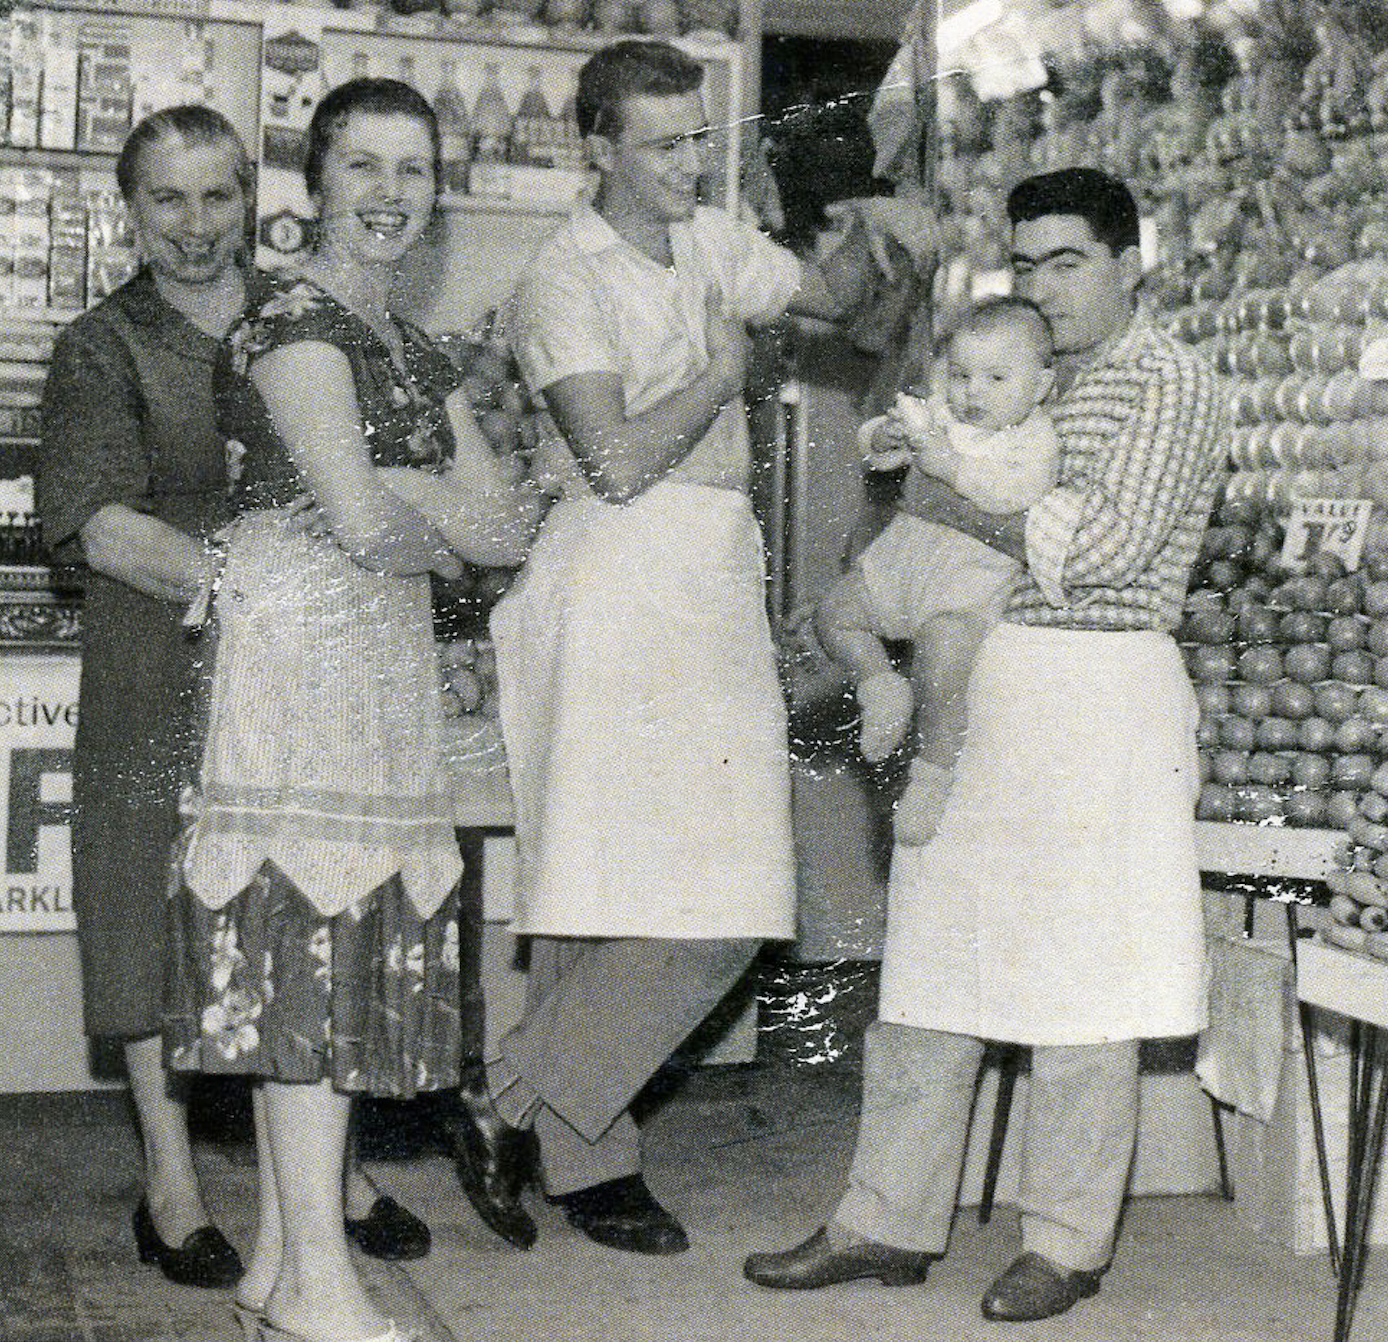 Arena's has been a Mosman landmark business for 60 years.